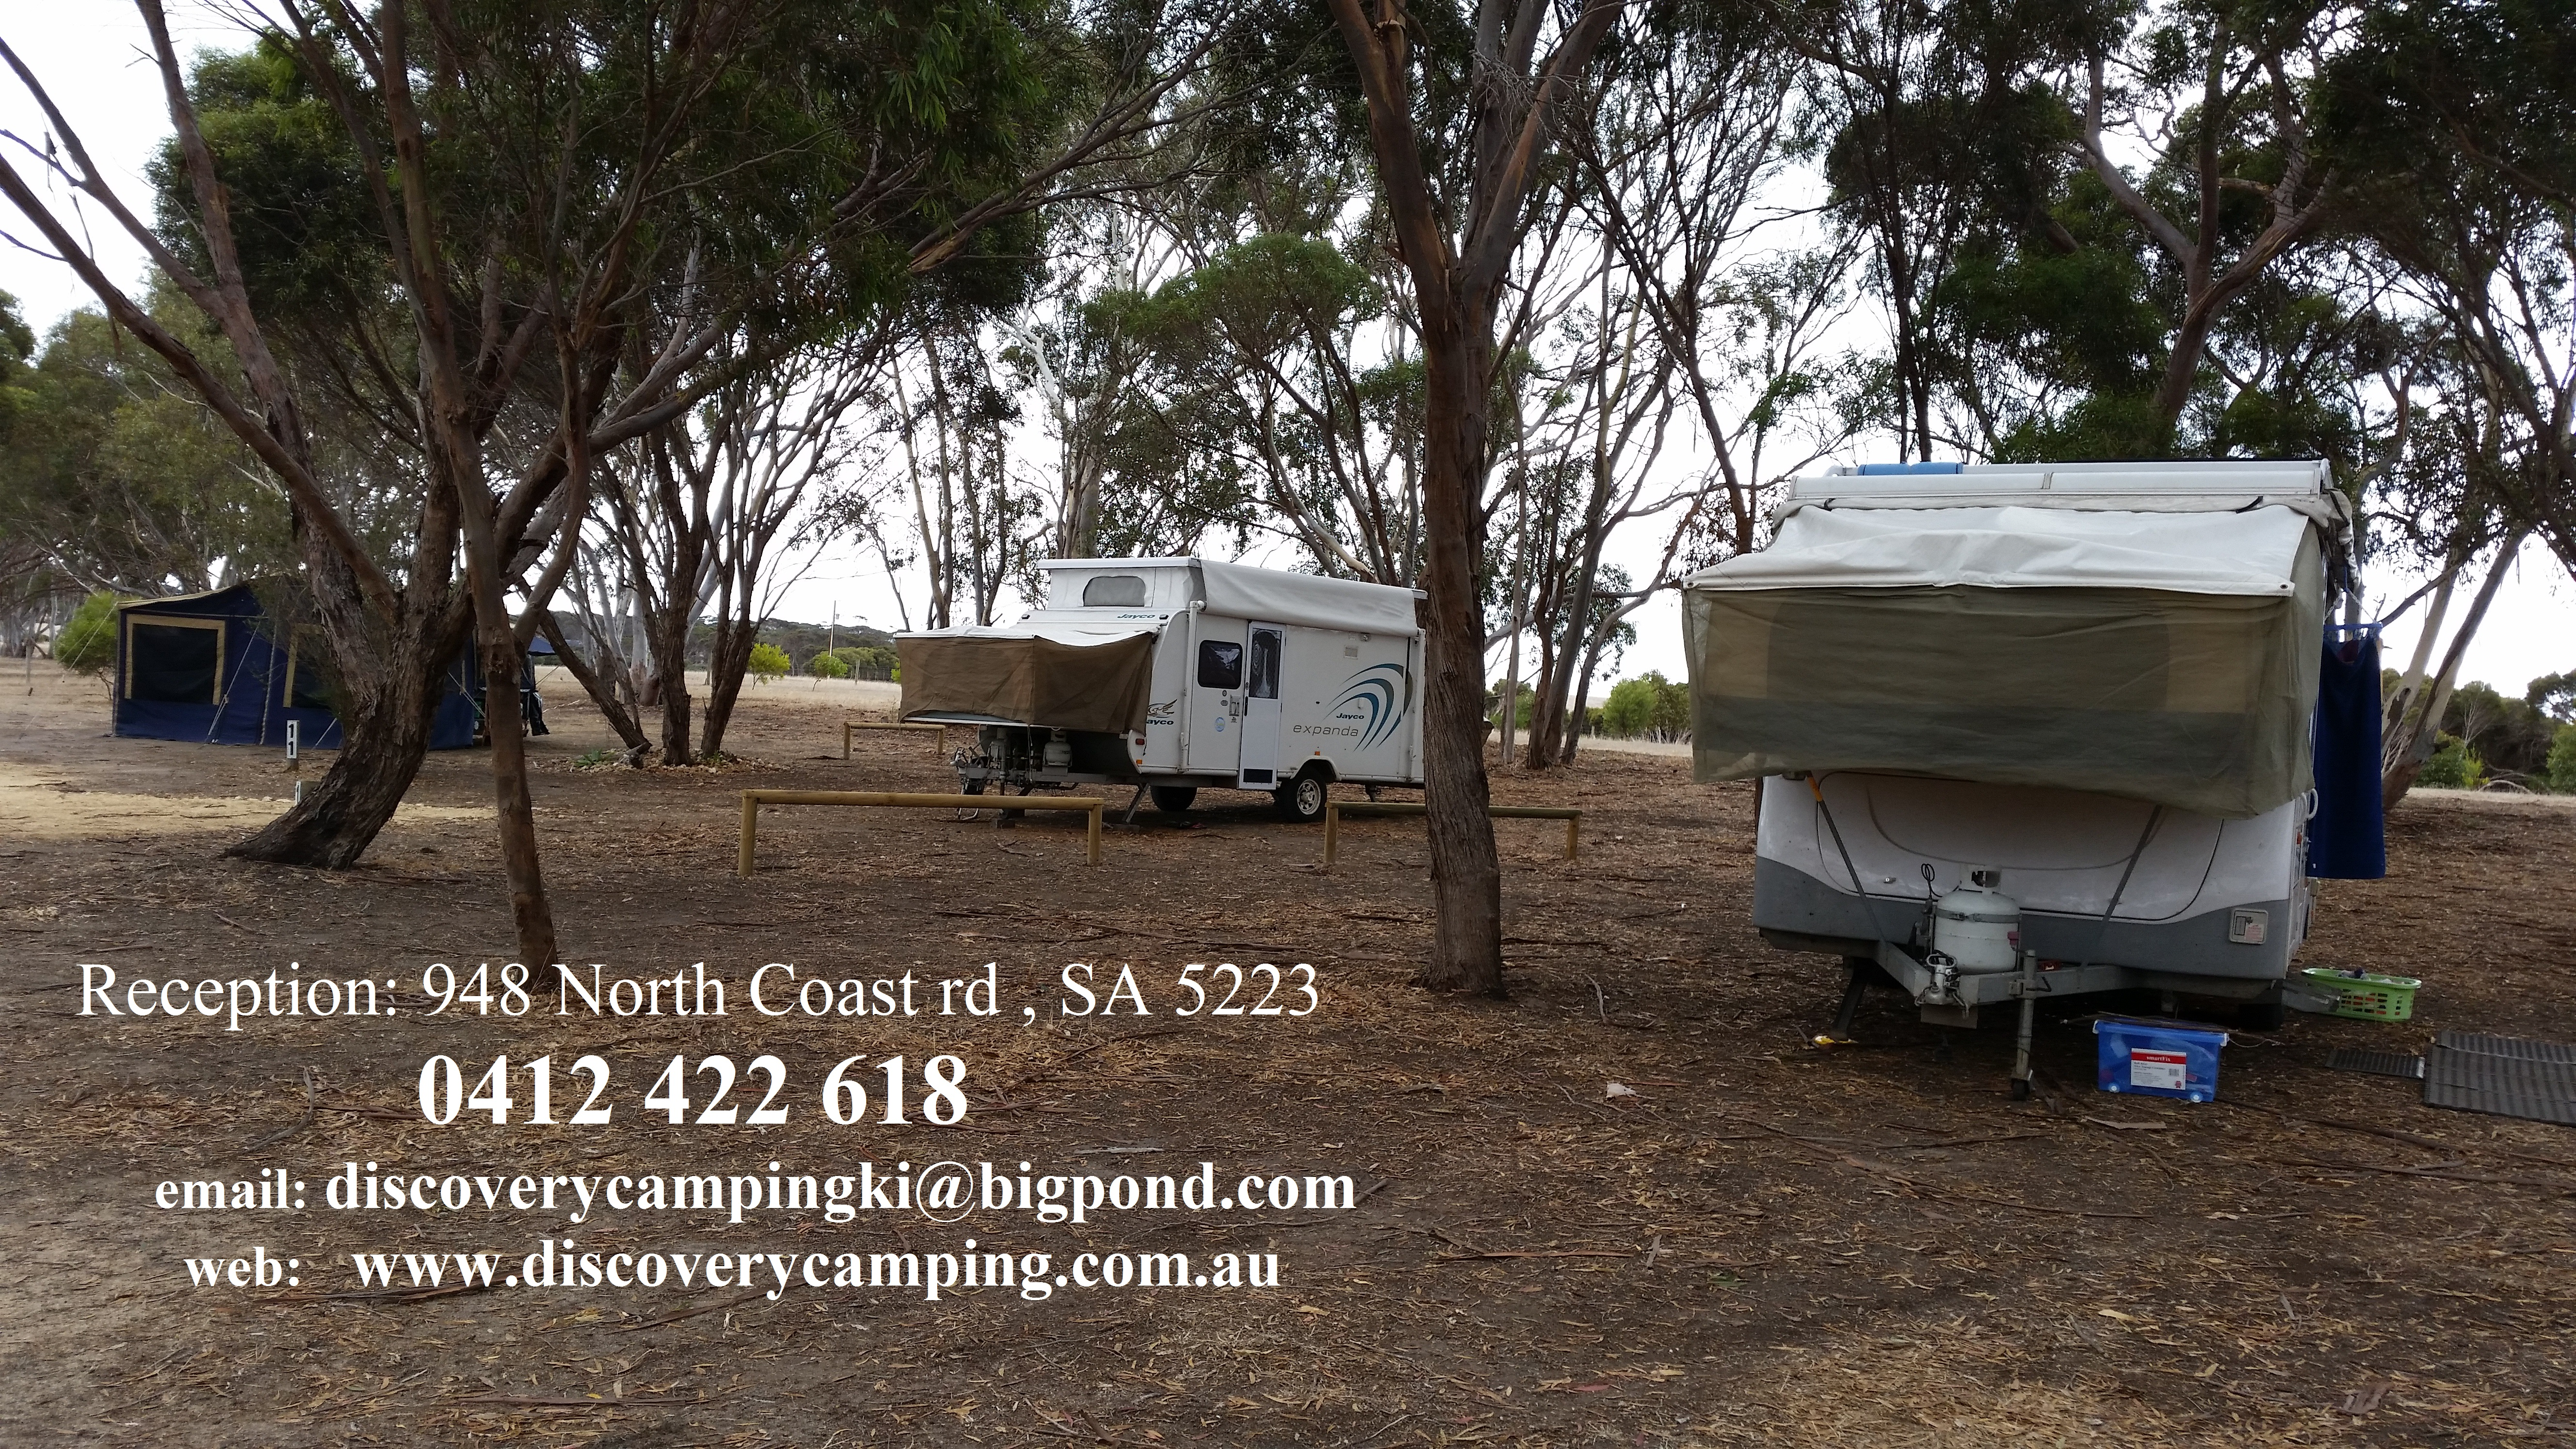 Discovery Lagoon  Caravan  Camping Grounds - Kempsey Accommodation